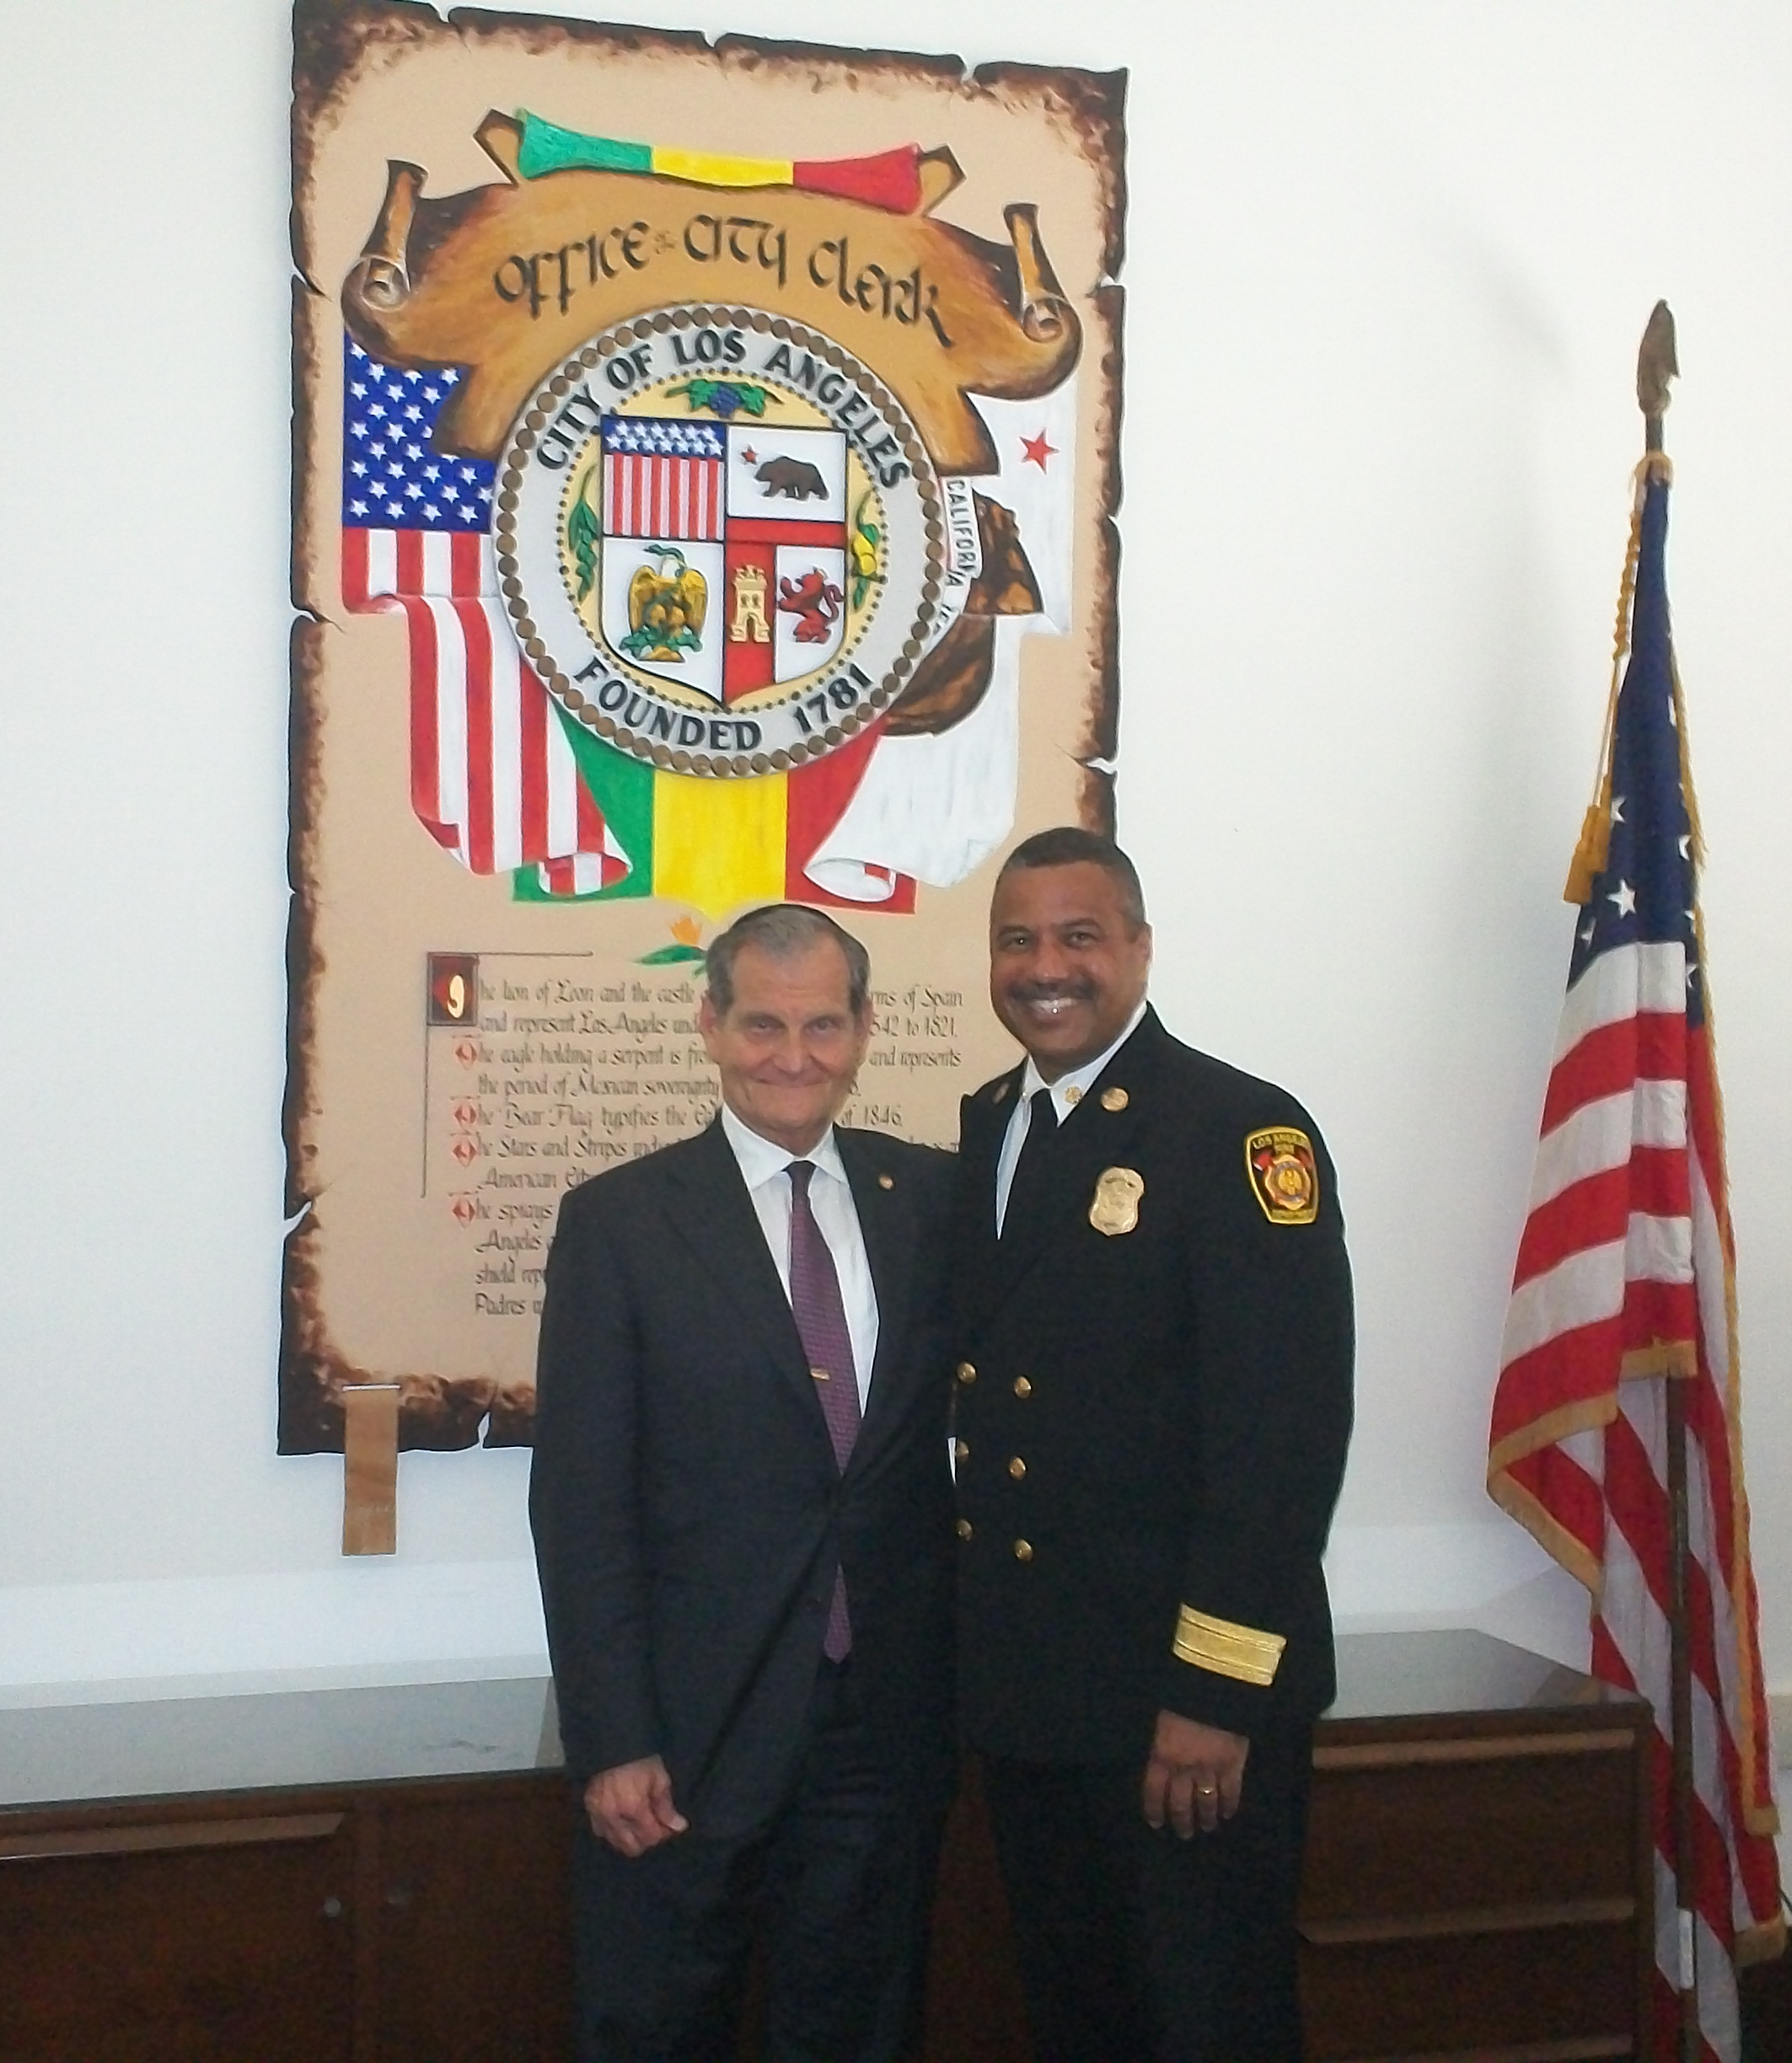 Andrew Friedman with LAFD Chief Cummings